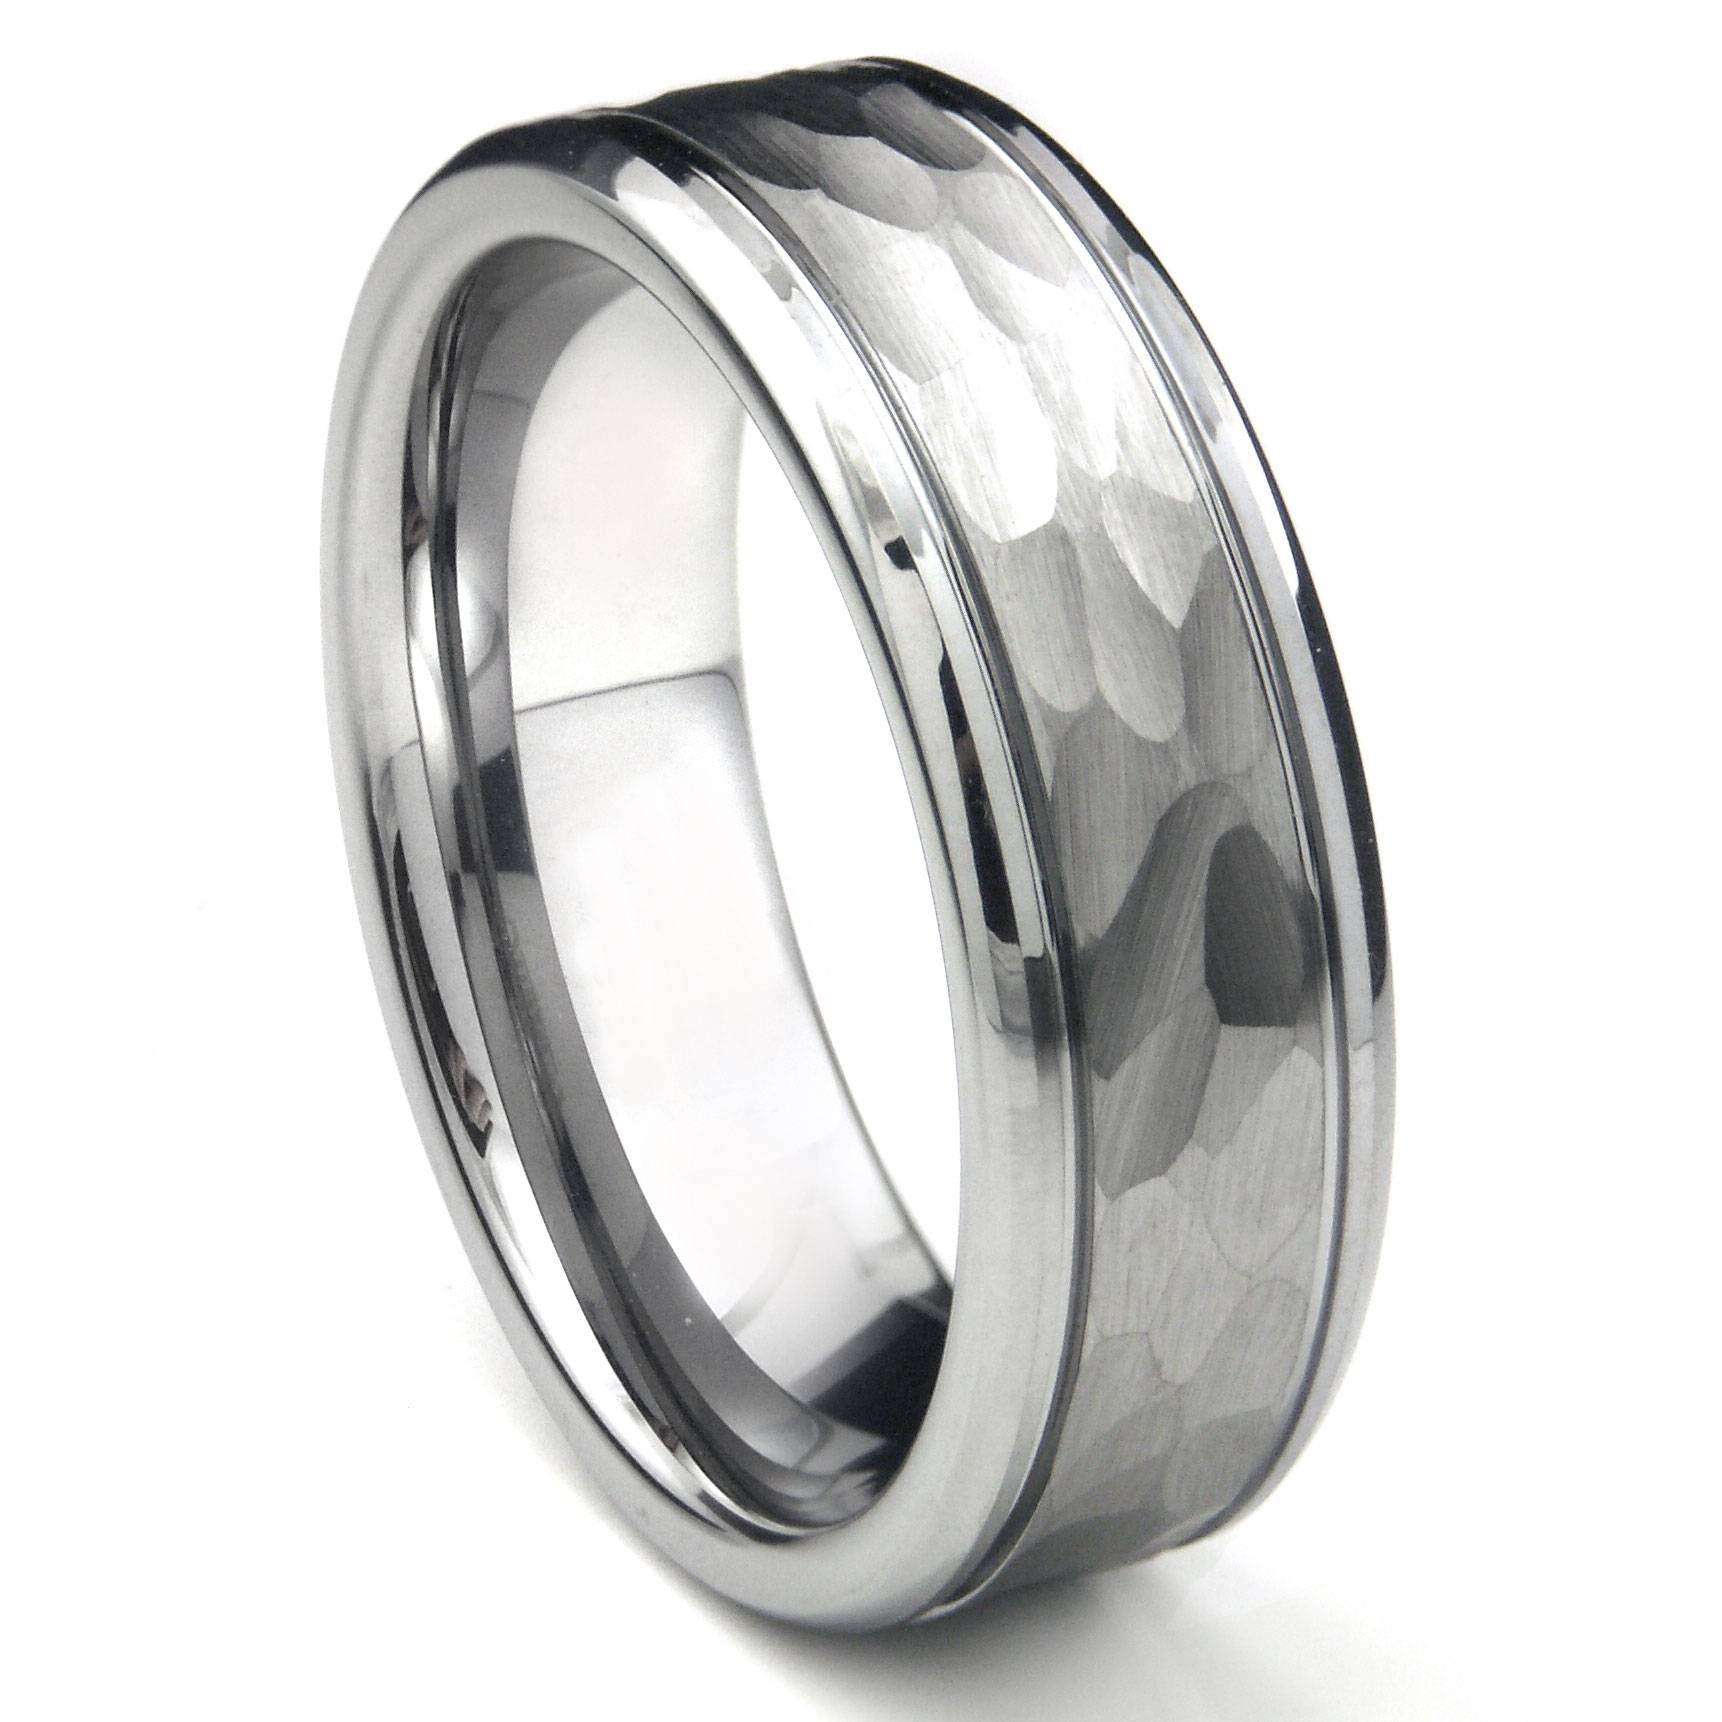 Tungsten Carbide Hammer Finish Wedding Band Ring /w Grooves Intended For Mens Hammered Wedding Bands (Gallery 5 of 15)